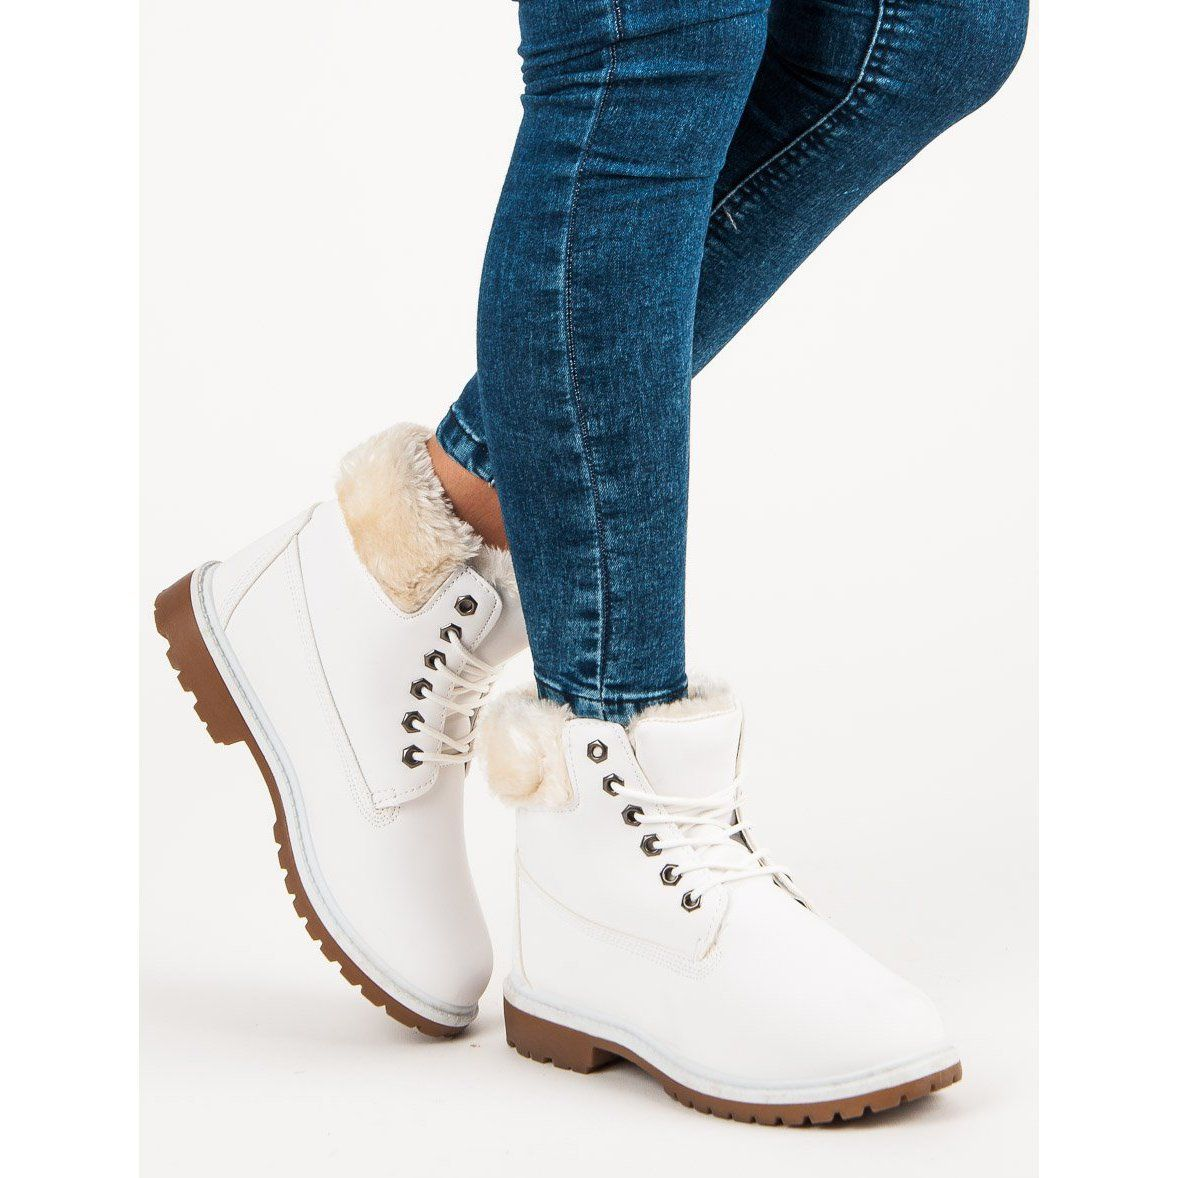 Seastar Zgrabne Traperki Biale Boots Timberland Boots Shoes